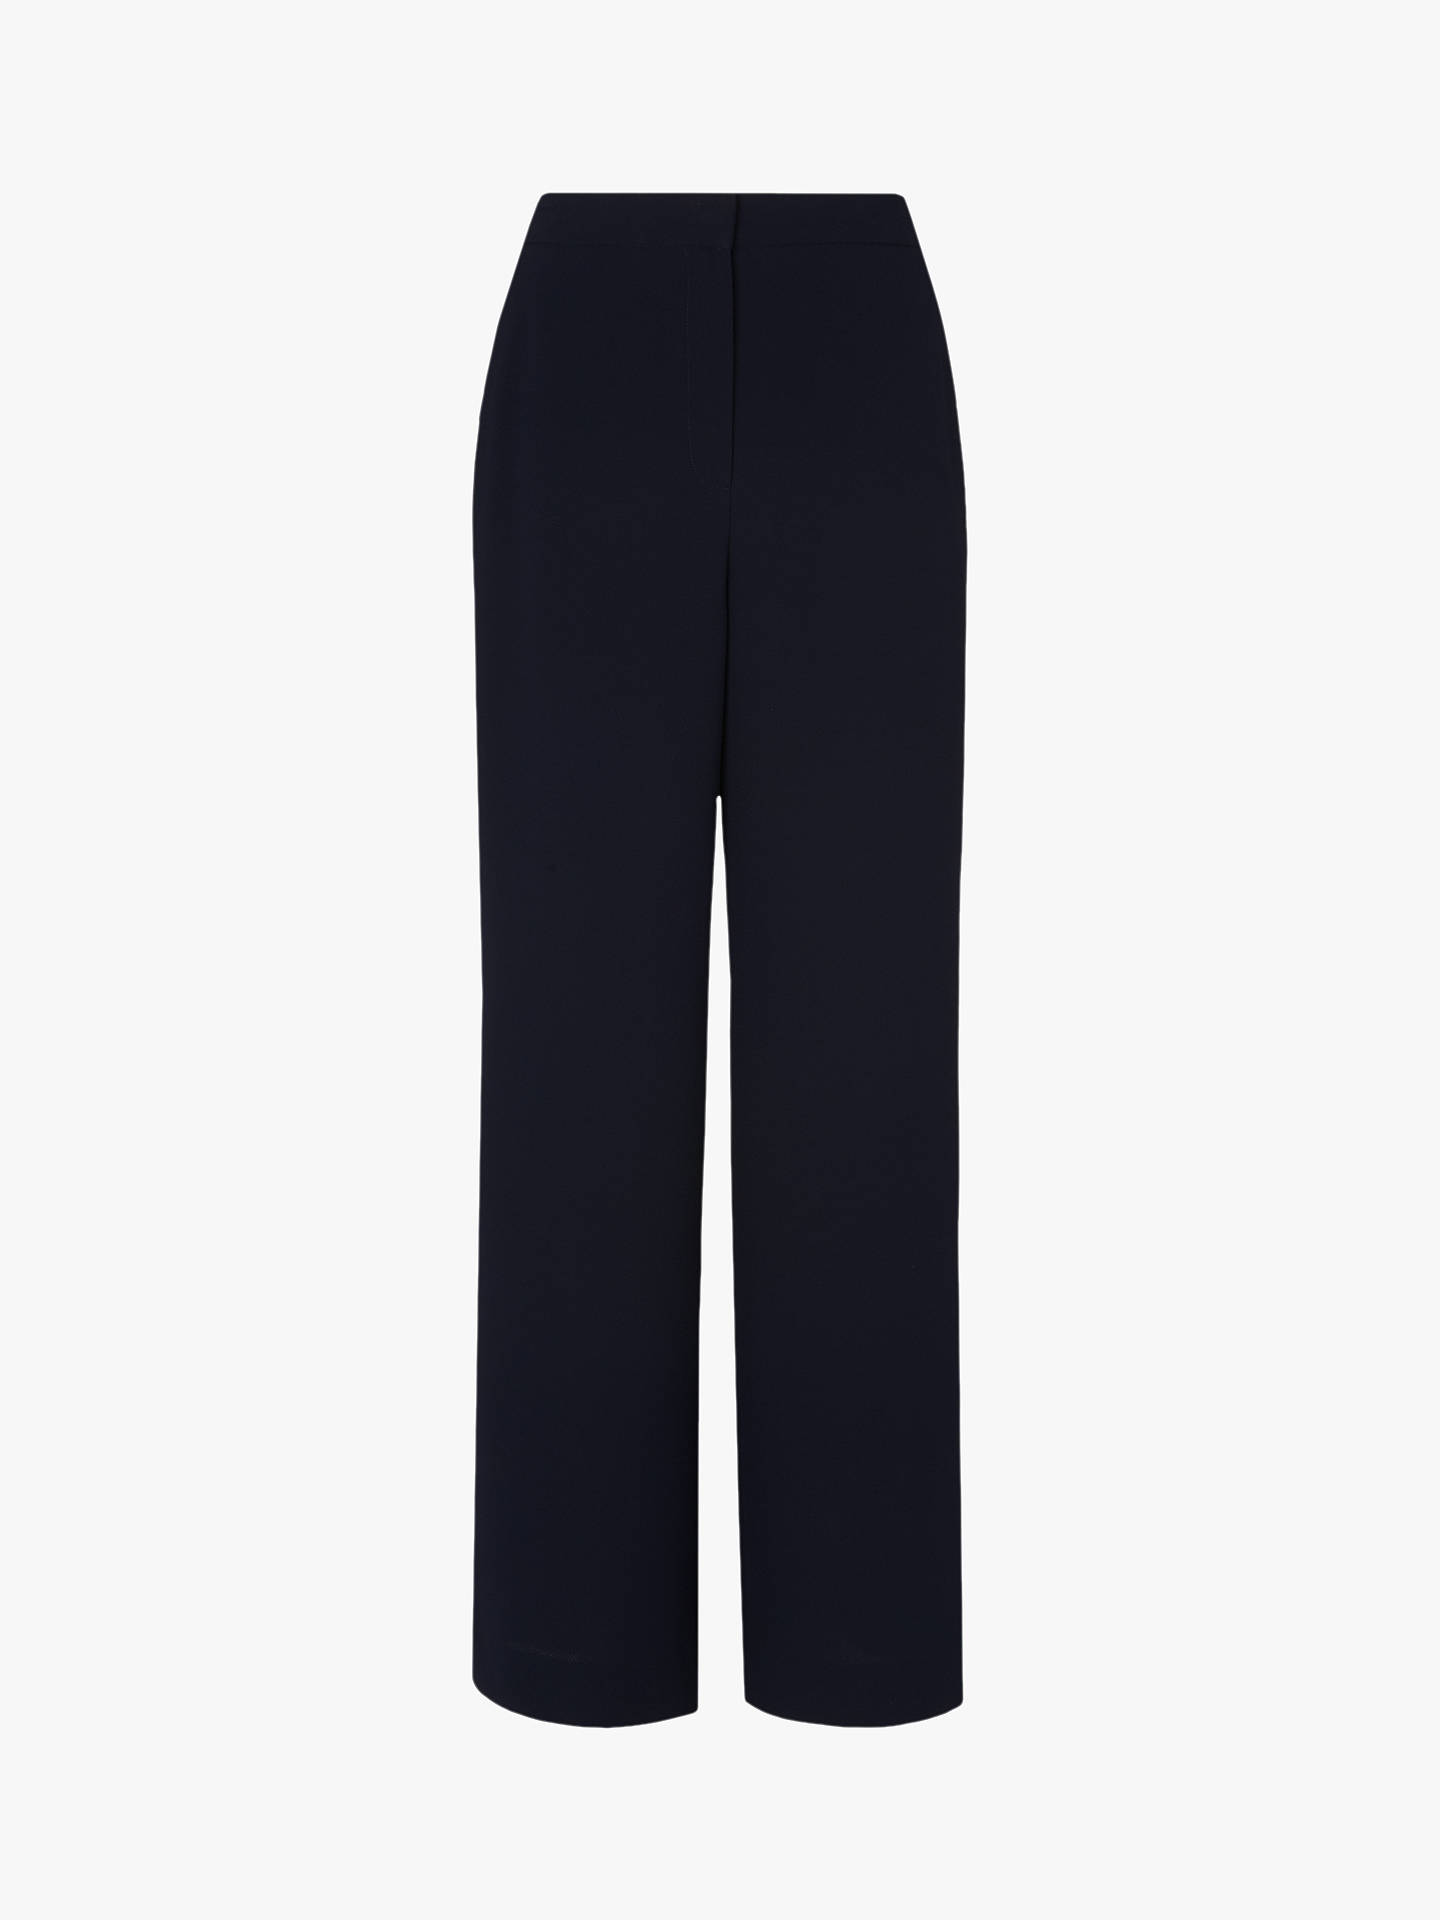 Buy L.K.Bennett Scarlett Trousers, Blue Navy, 6 Online at johnlewis.com